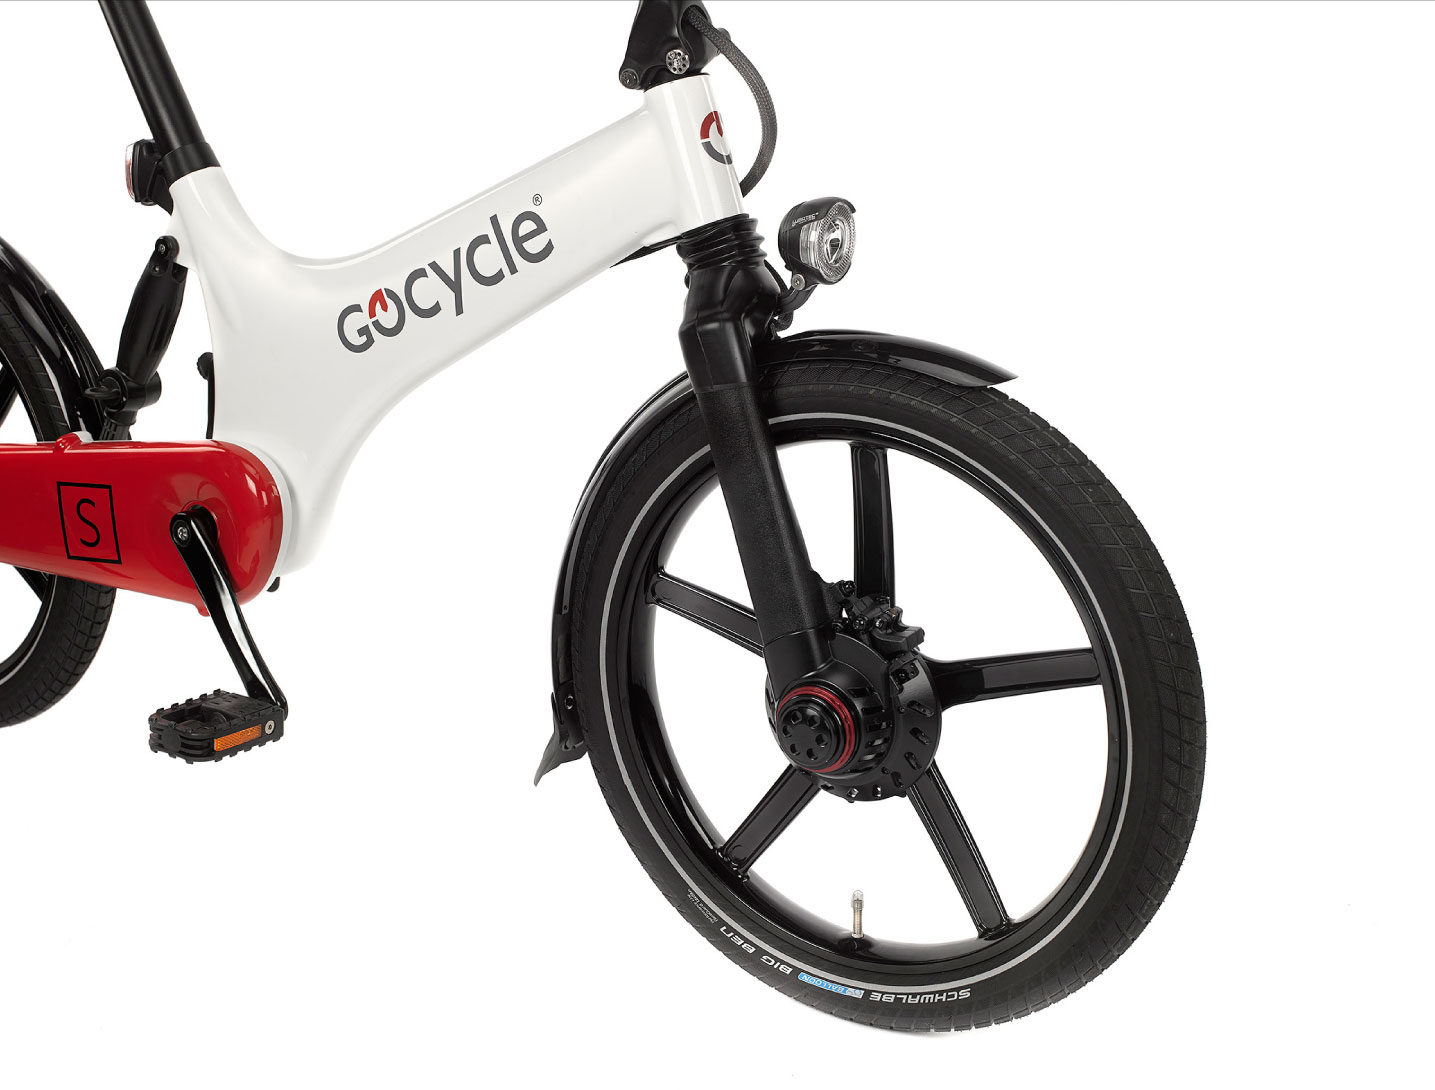 Gocycle white